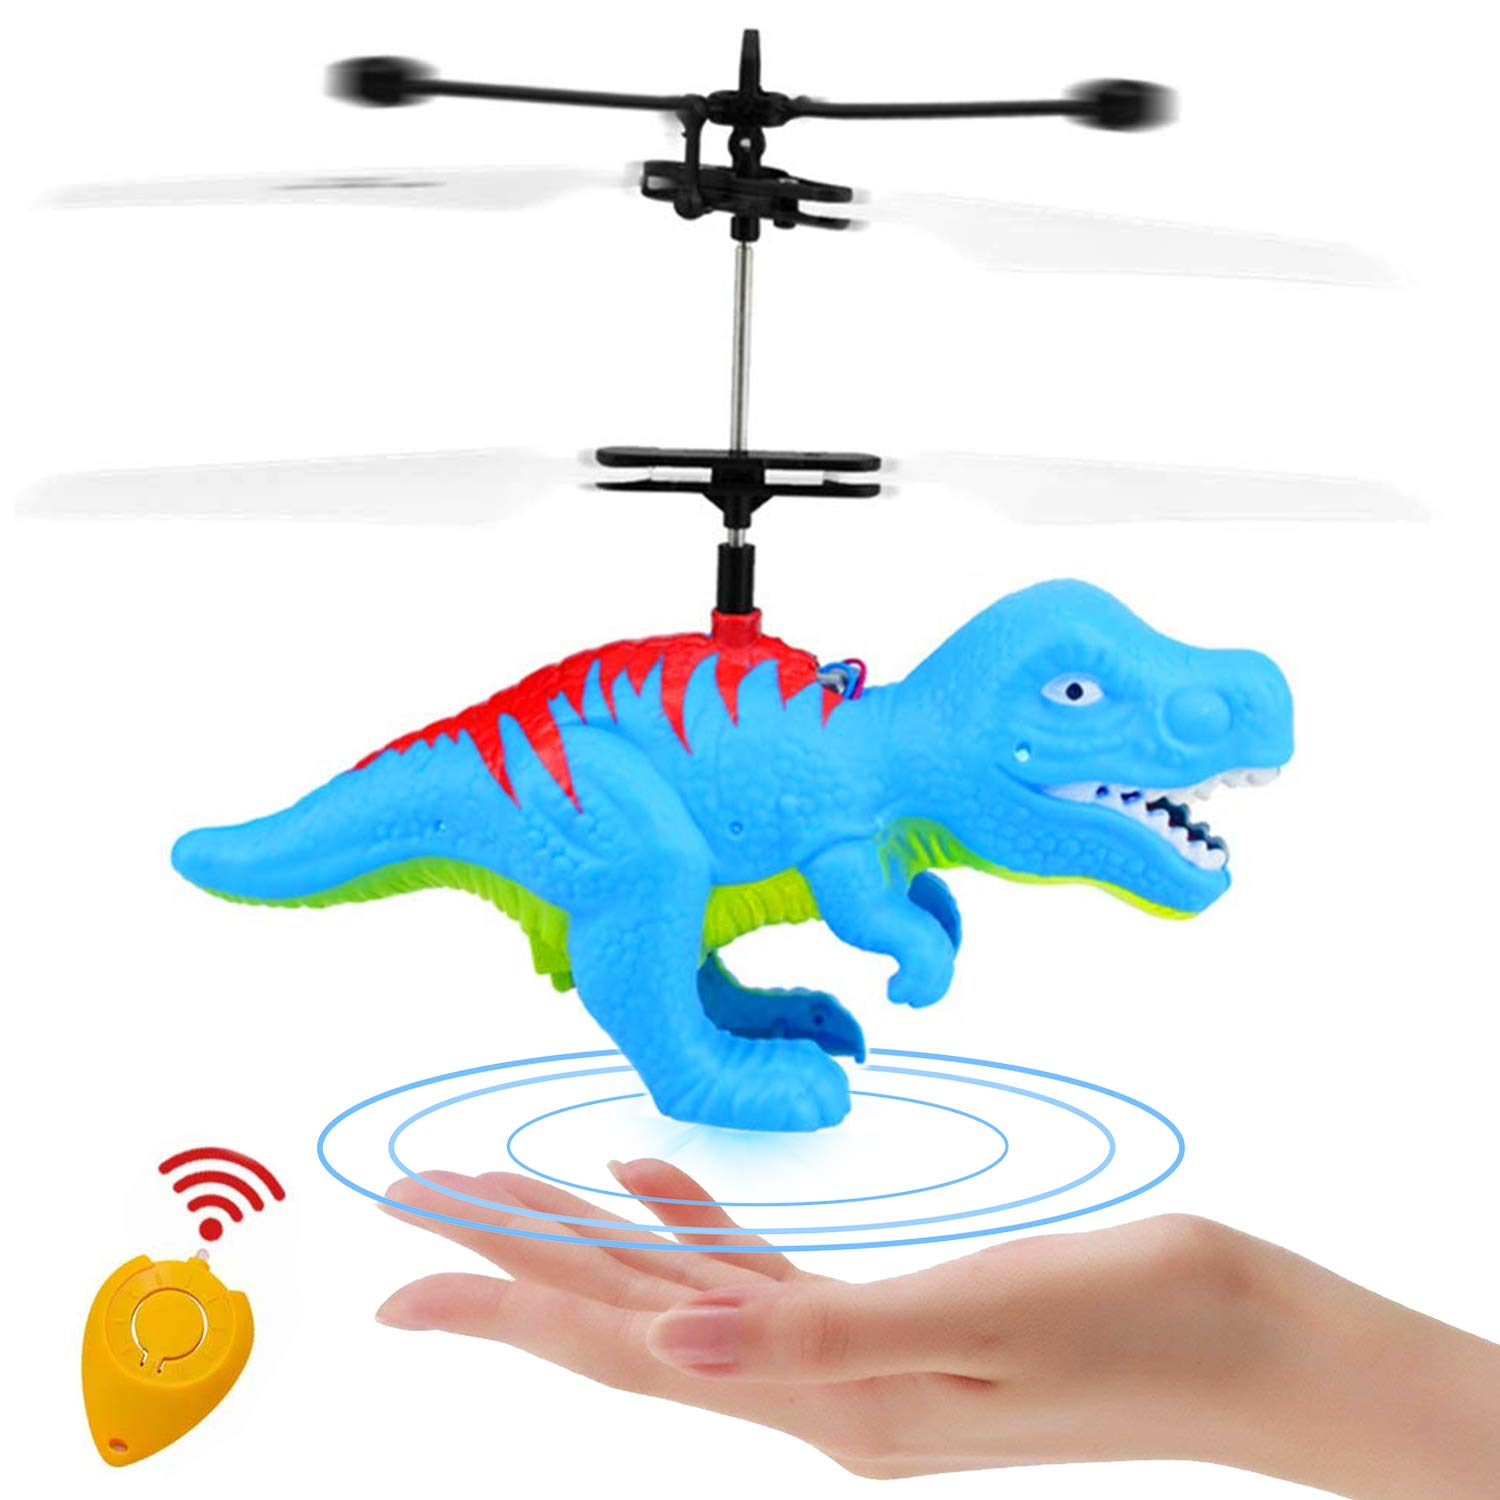 Funburg Flying Ball Dinosaur Toys,RC Drone LED Colorful Light Up Helicopter with Remote,Indoor Outdoor for 6 Year Old Kid,Infrared Induction Flying Toys Dinosaur Birthday Gifts for Boys Girls Kids by Funburg (Image #1)